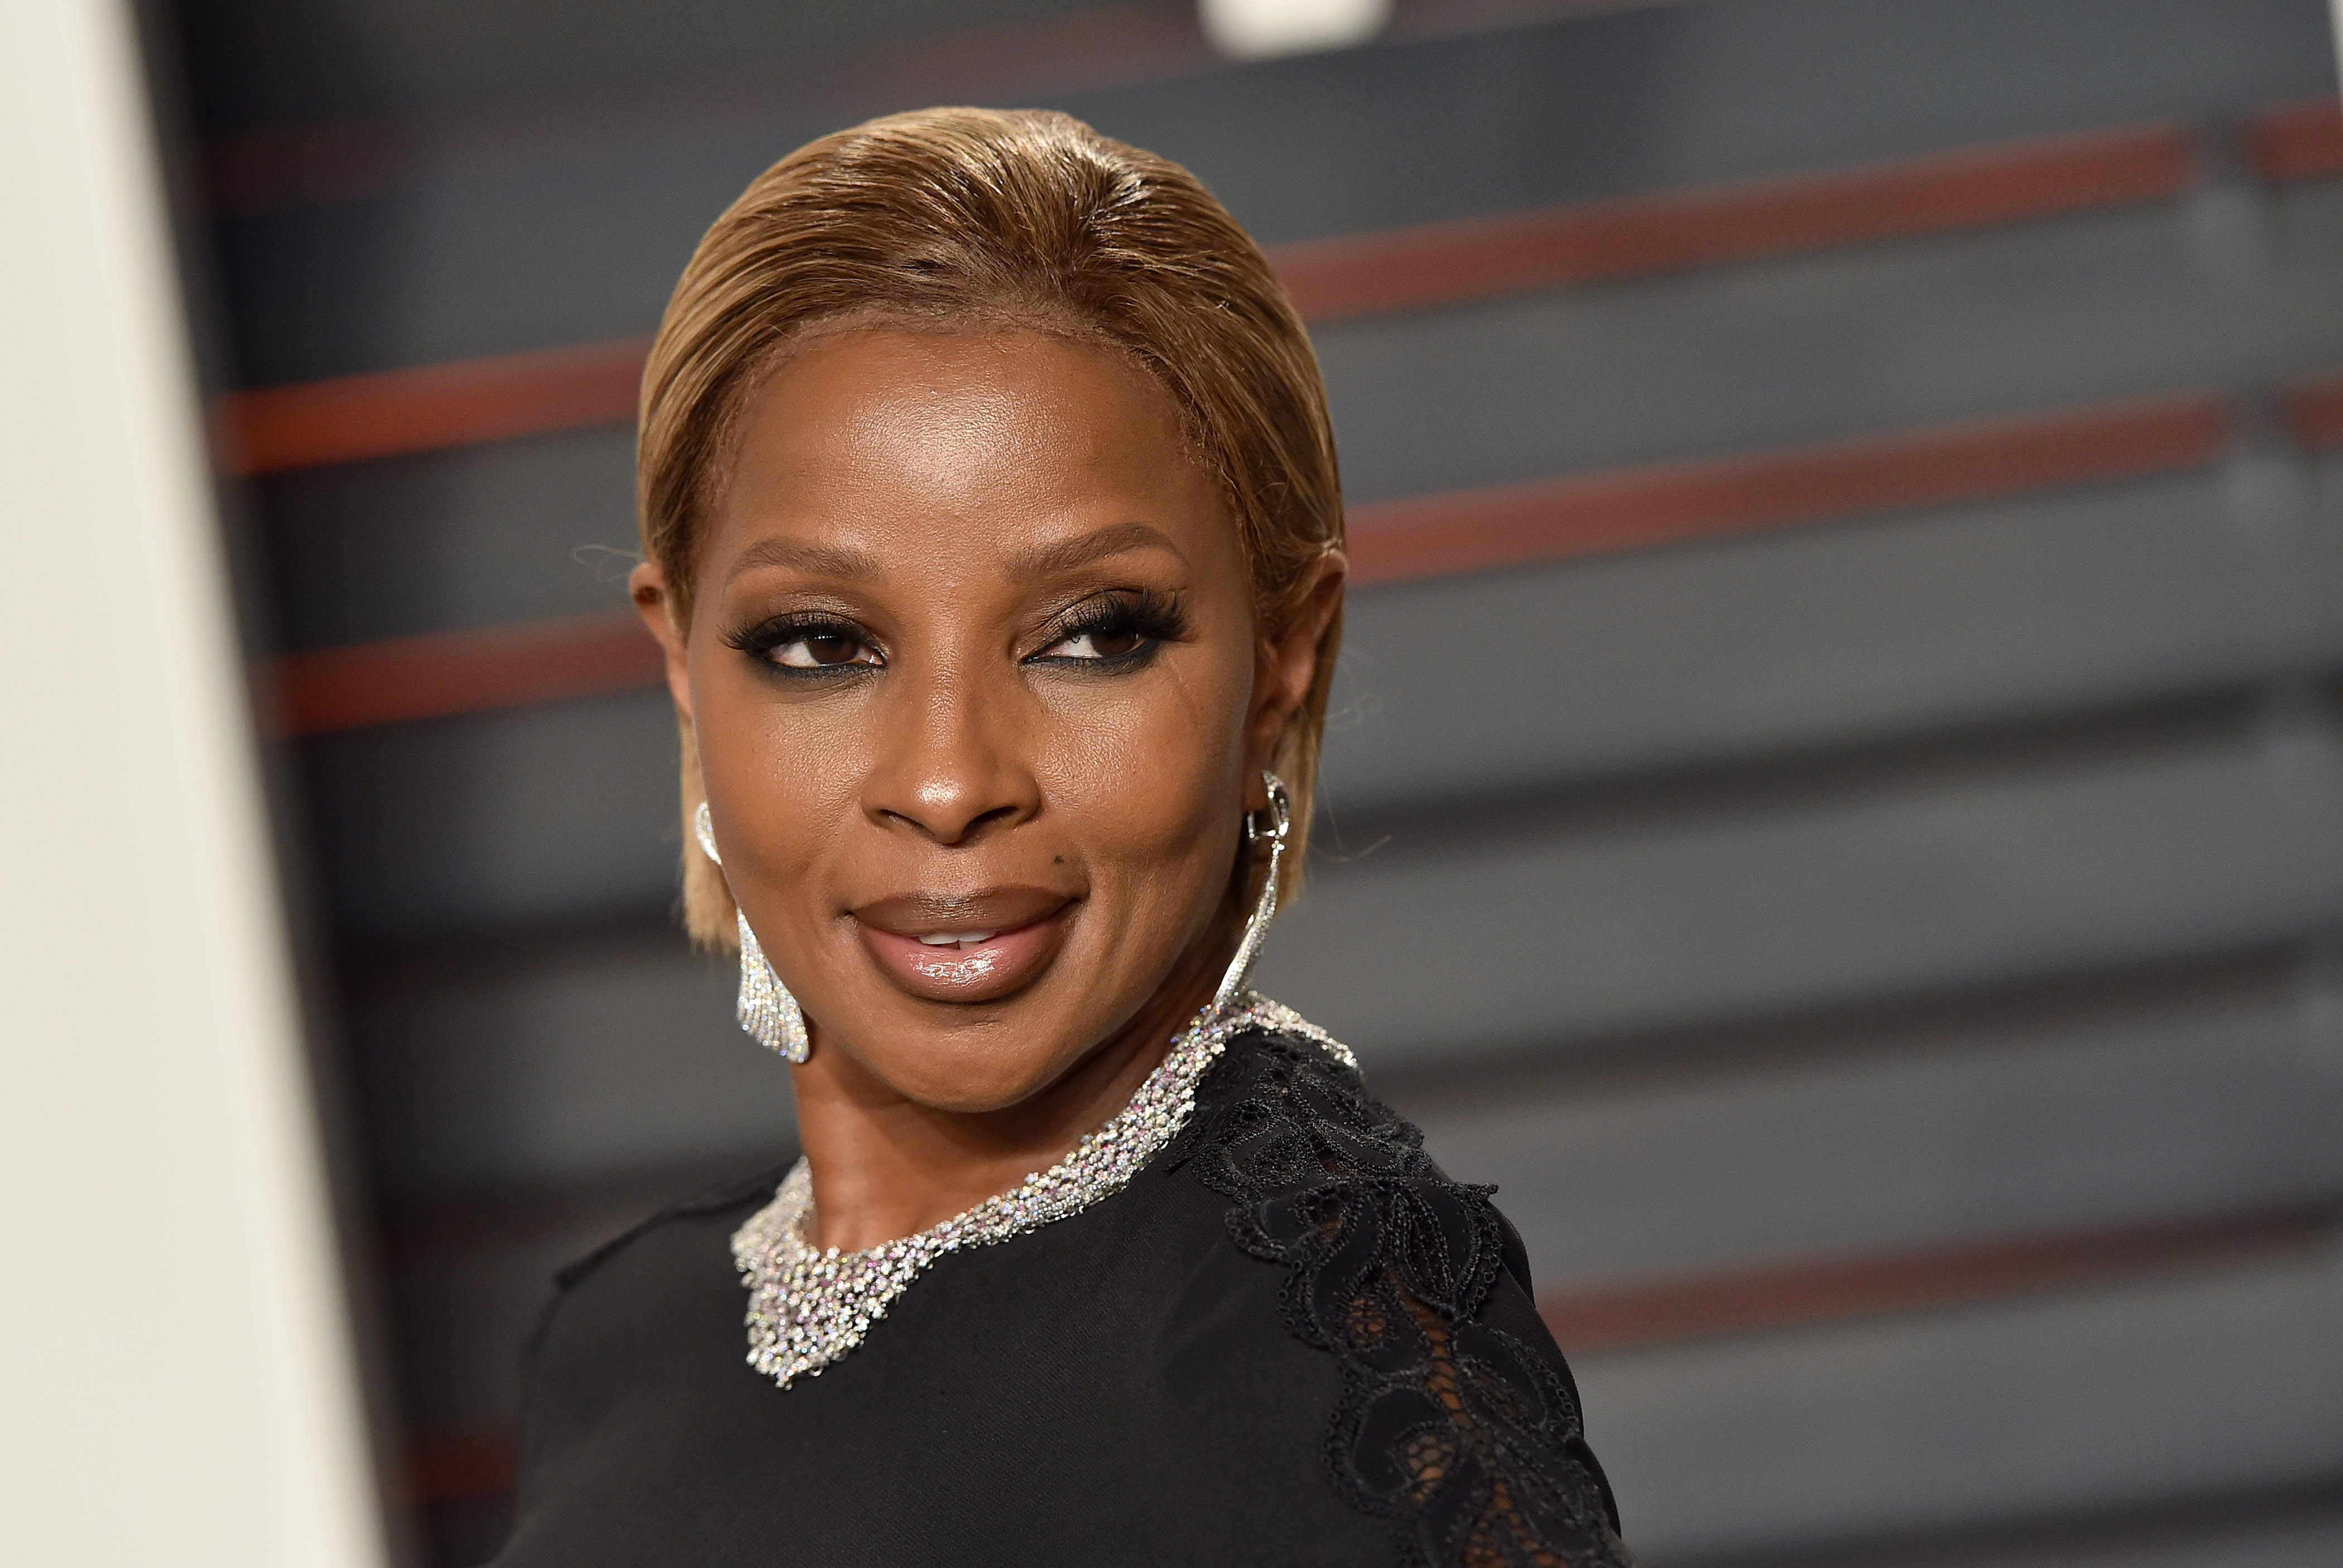 WATCH: Mary J Blige's extraordinarily emotional interview with Hillary Clinton for Beats 1 show will give you shivers